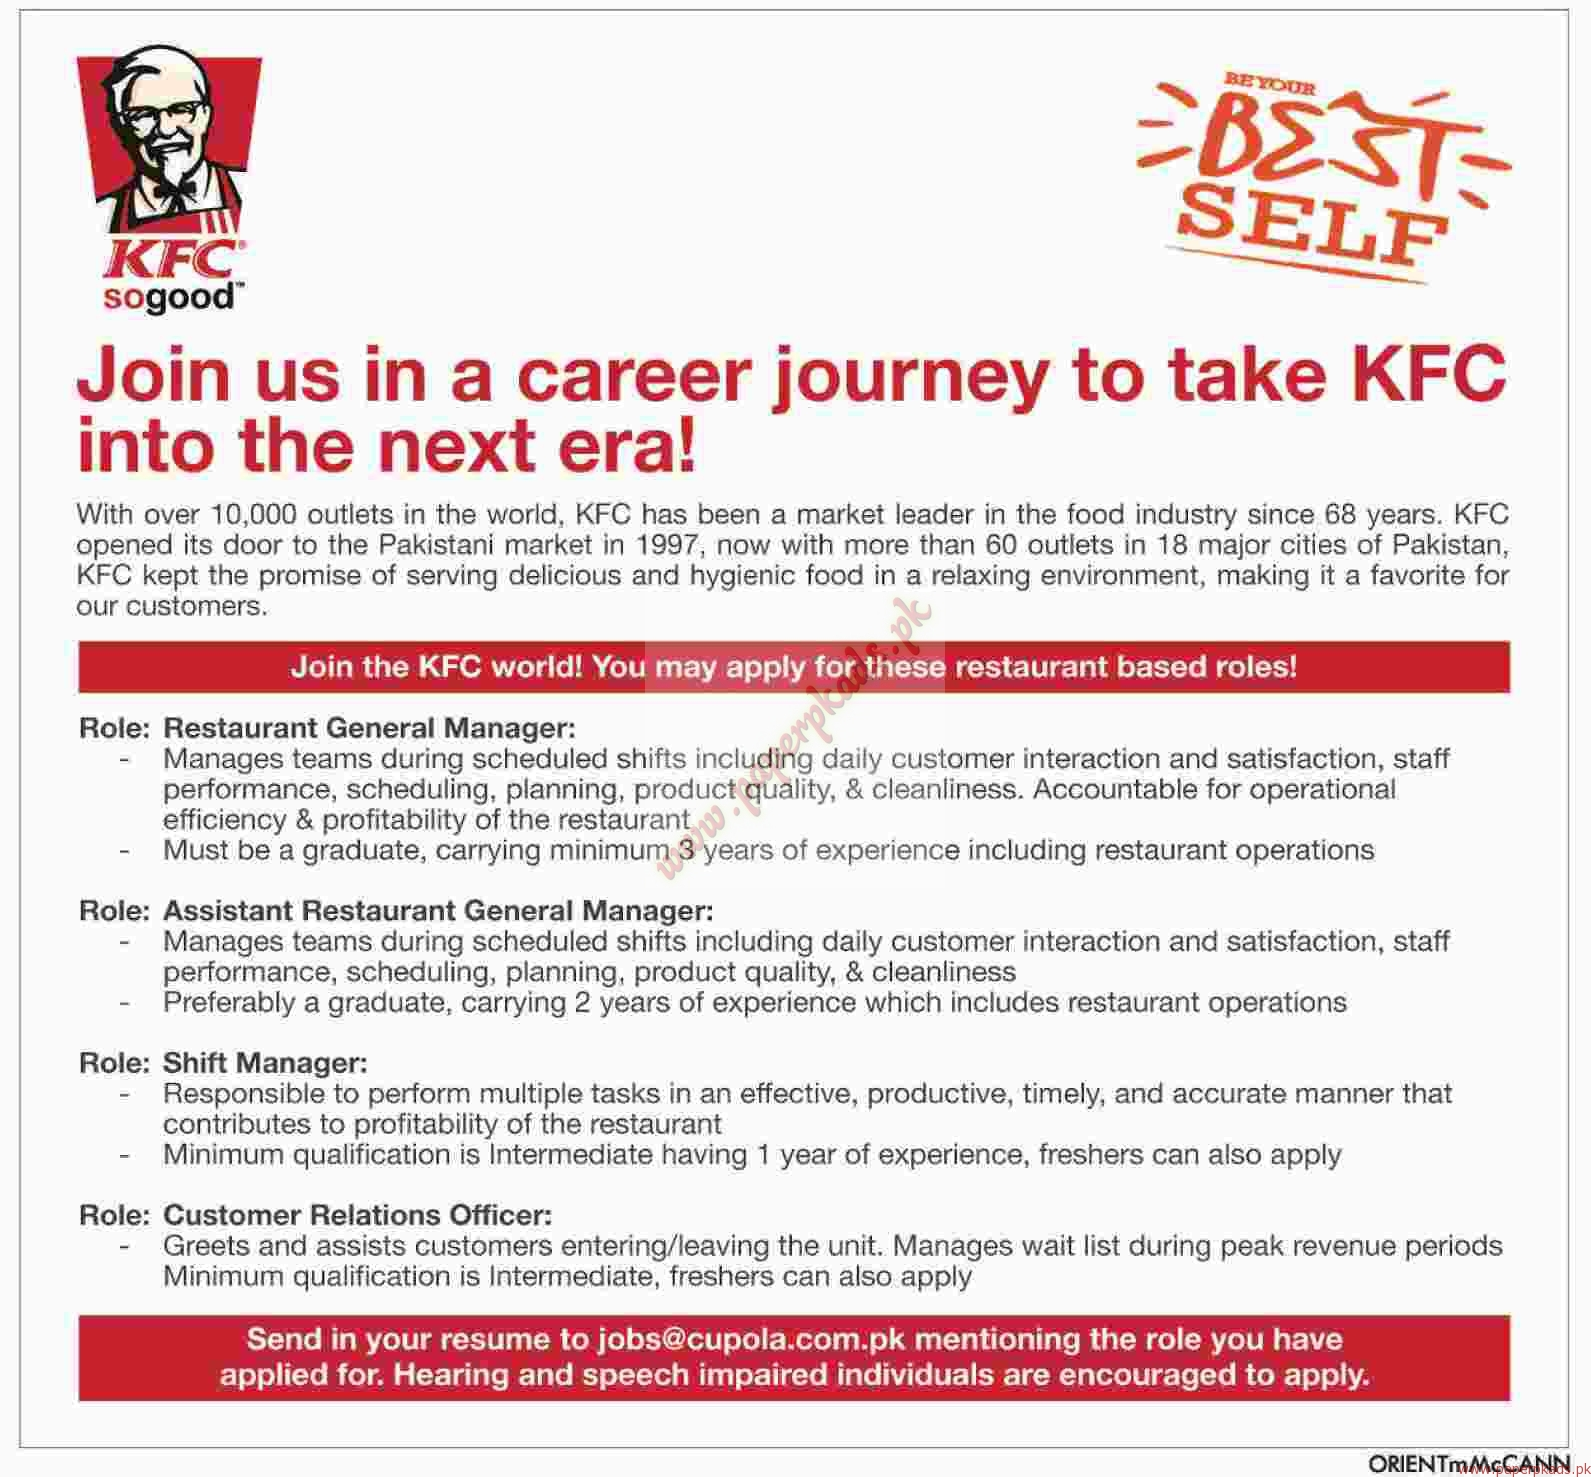 High School Student Resume Samples Youth Central Kfc Jobs Dawn Jobs Ads 17 April 2016 Paperpk